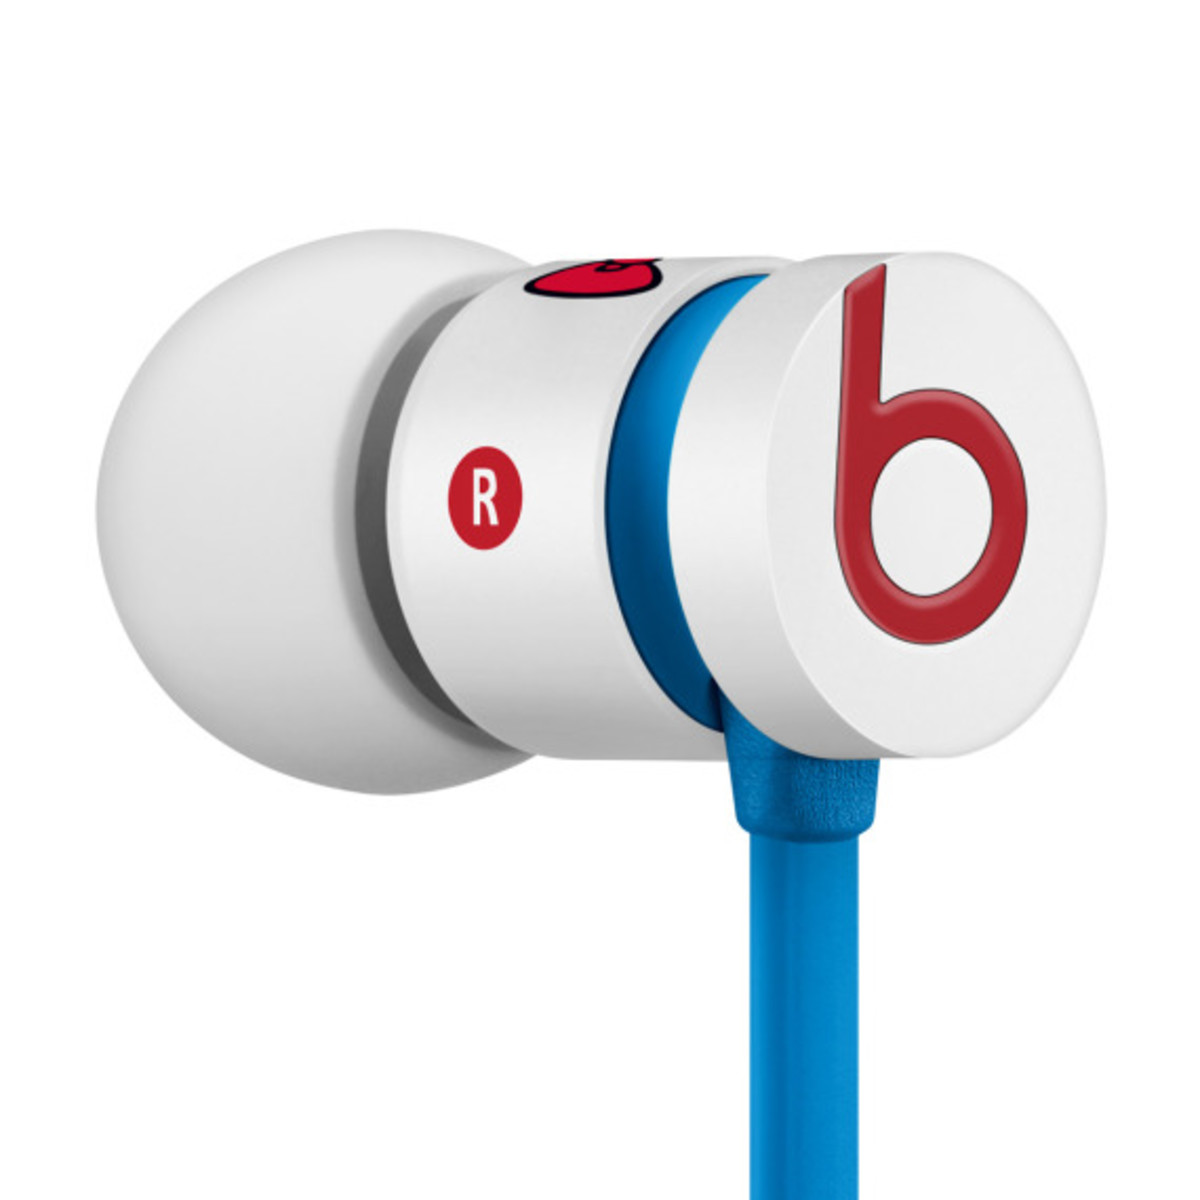 Beats by Dr. Dre x Hello Kitty - 40th Anniversary urBeats Earphones - 18